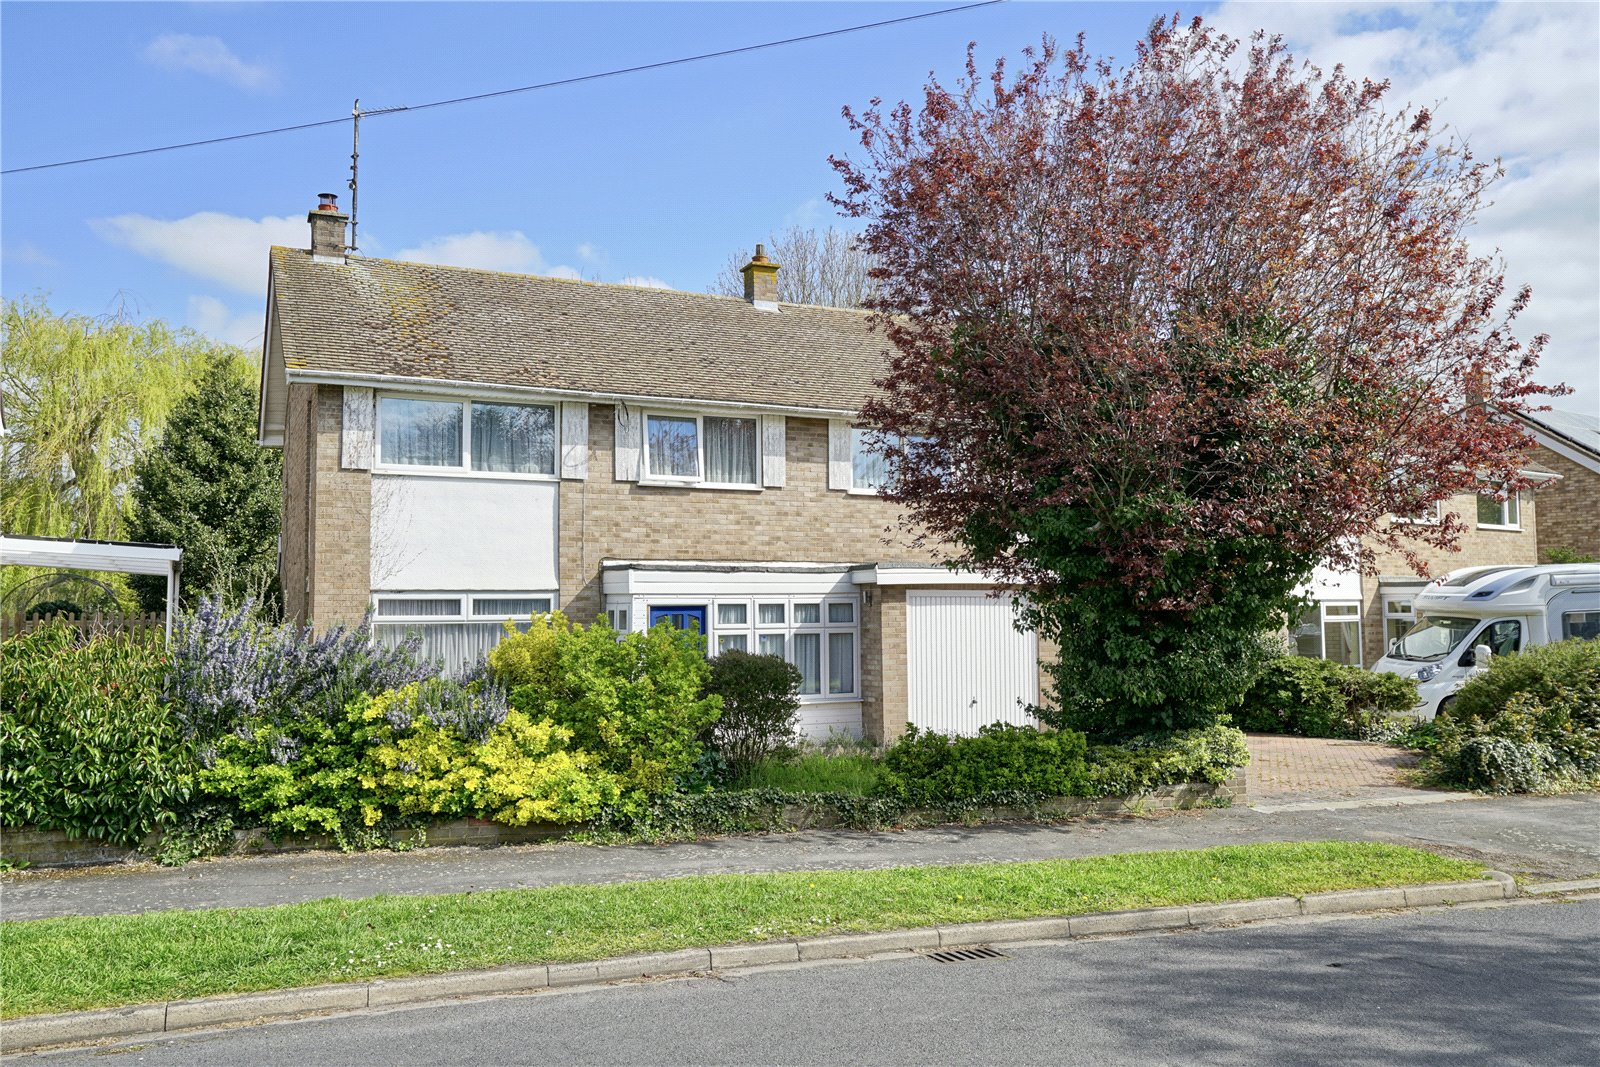 4 bed house for sale in Field Cottage Road, Eaton Socon, PE19